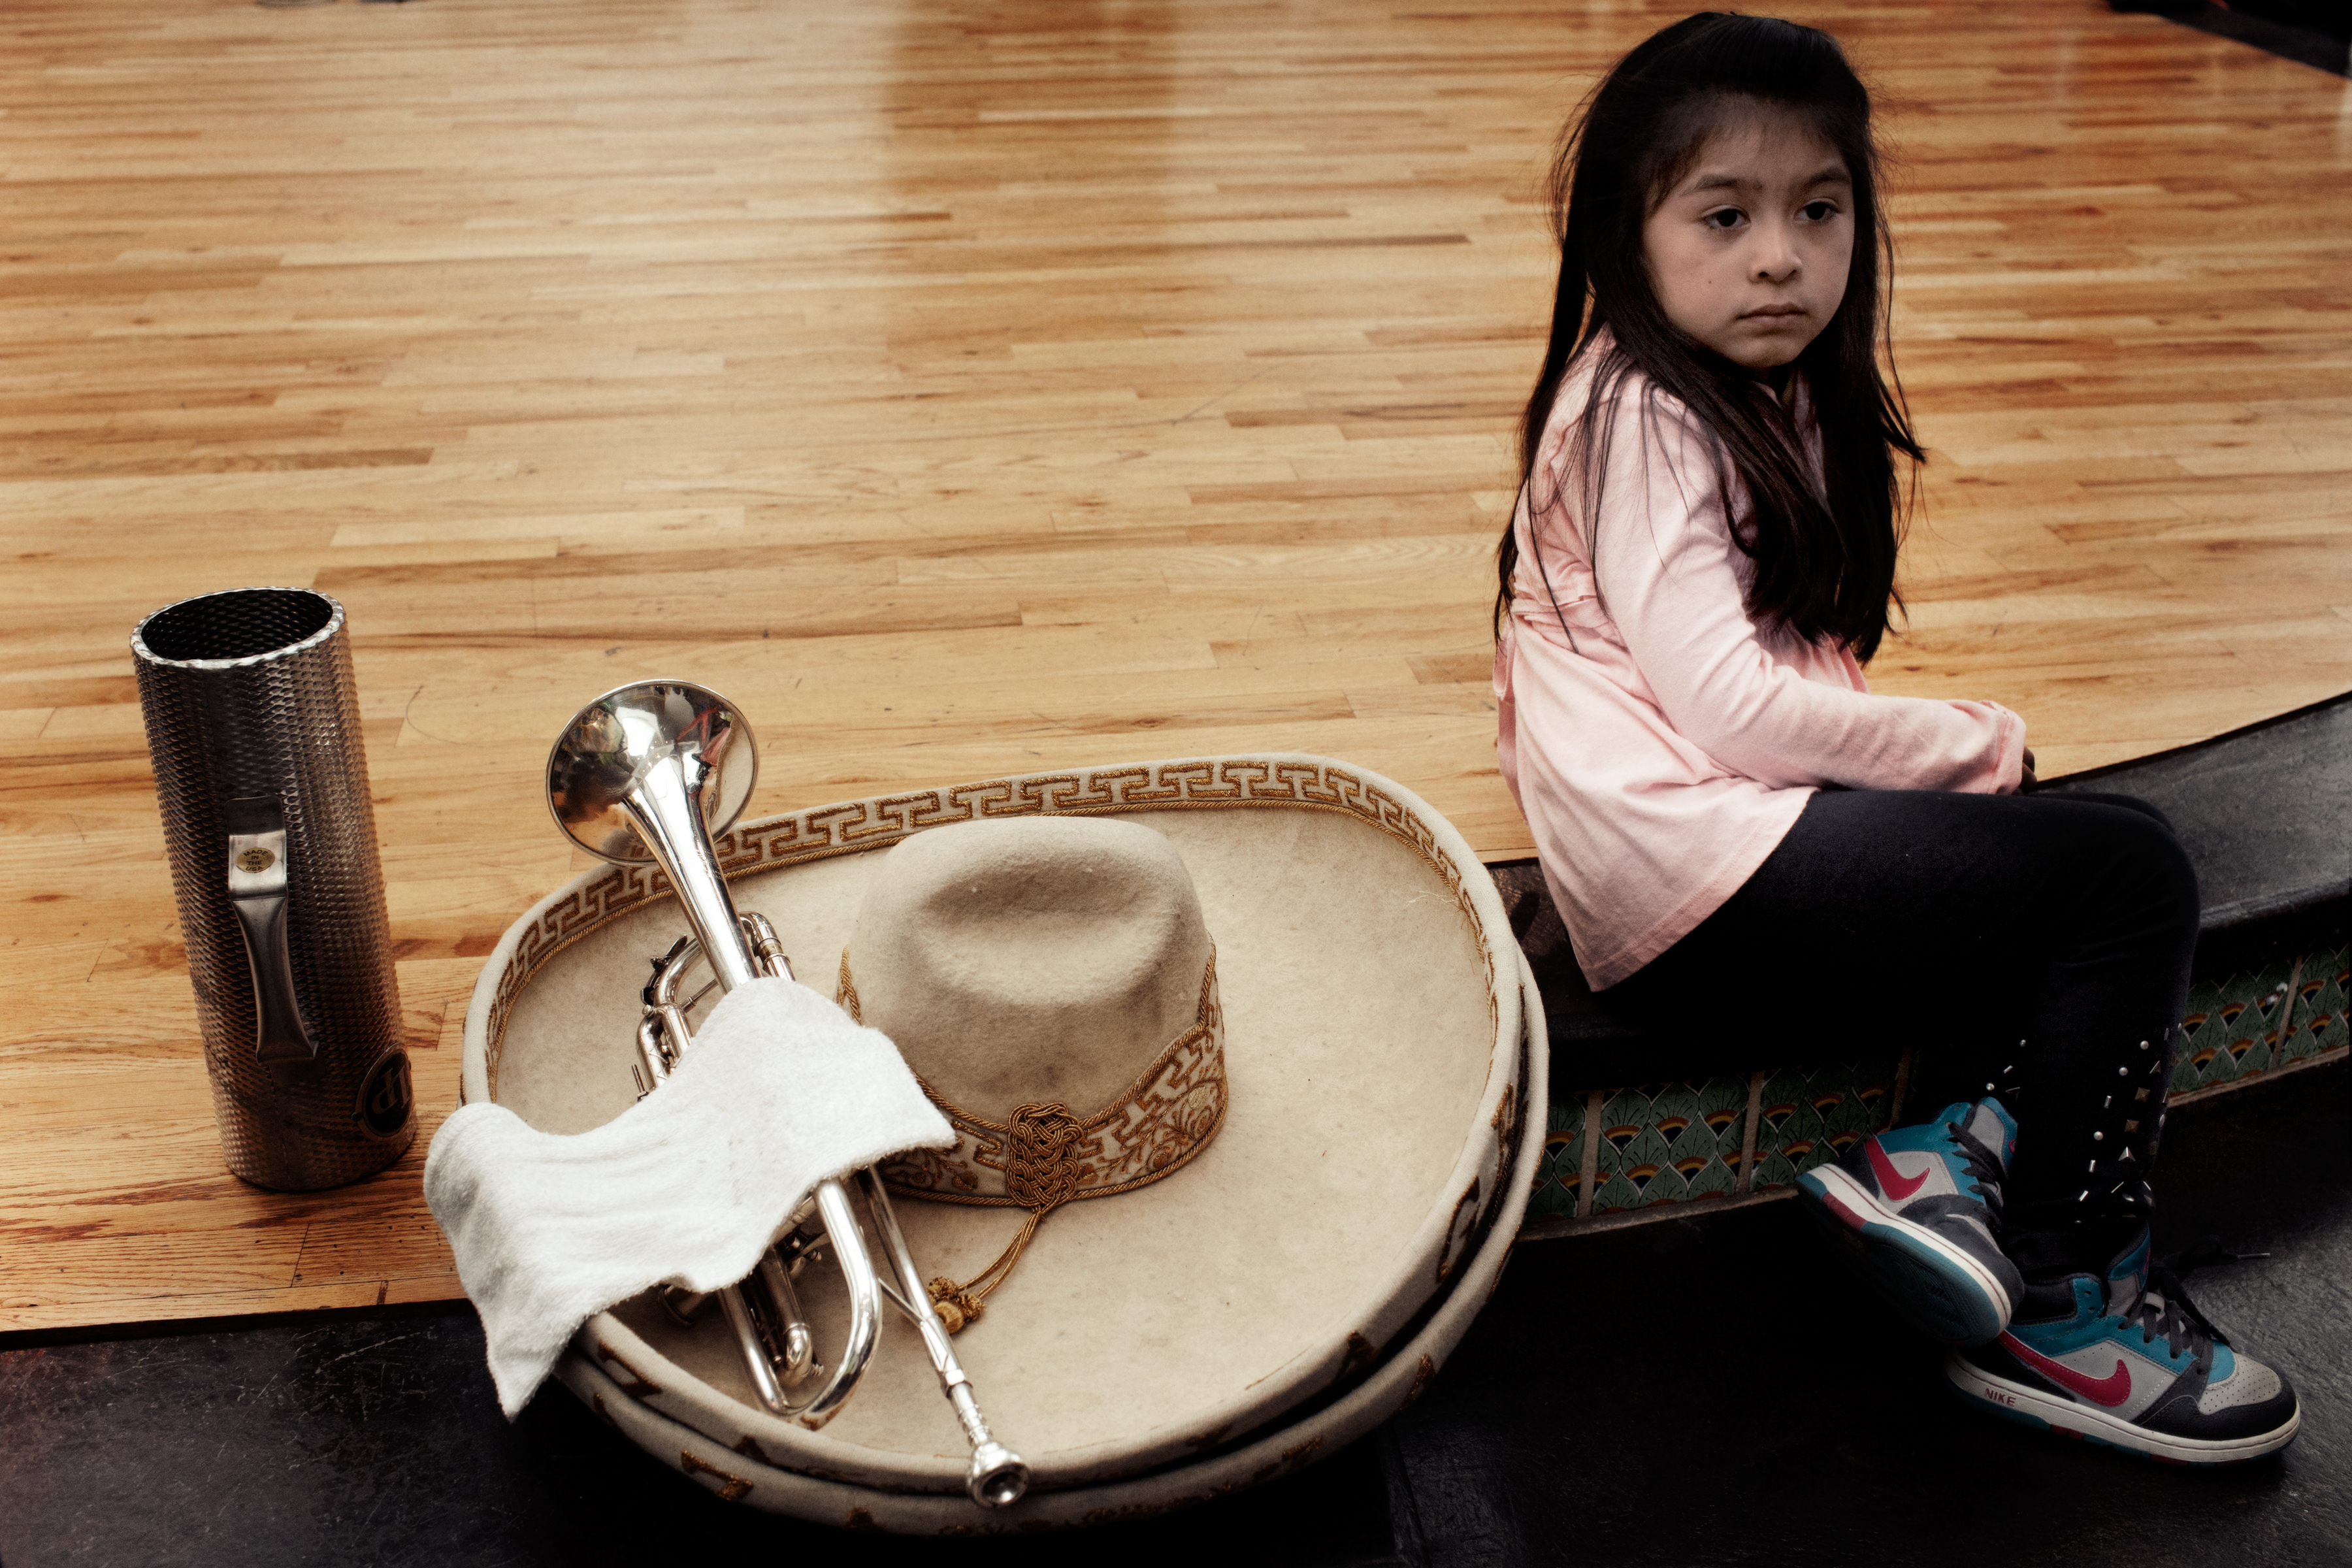 A girl sits on the edge of the stage beside a Mariachi's sombrero and trumpet before the weekend's entertainment begins.